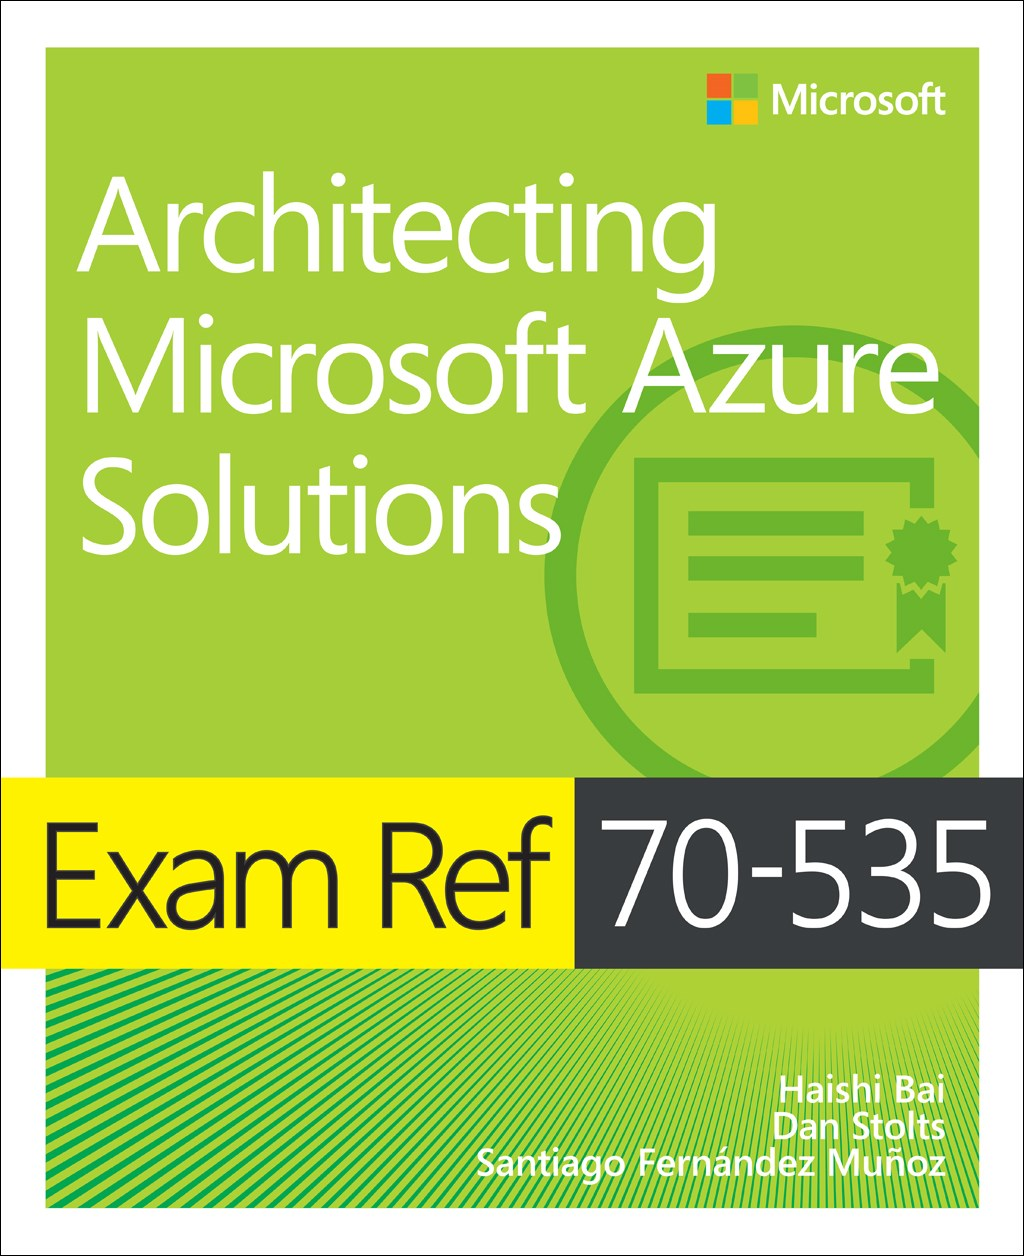 Exam Ref 70-534 Architecting Microsoft Azure Solutions, 2nd Edition